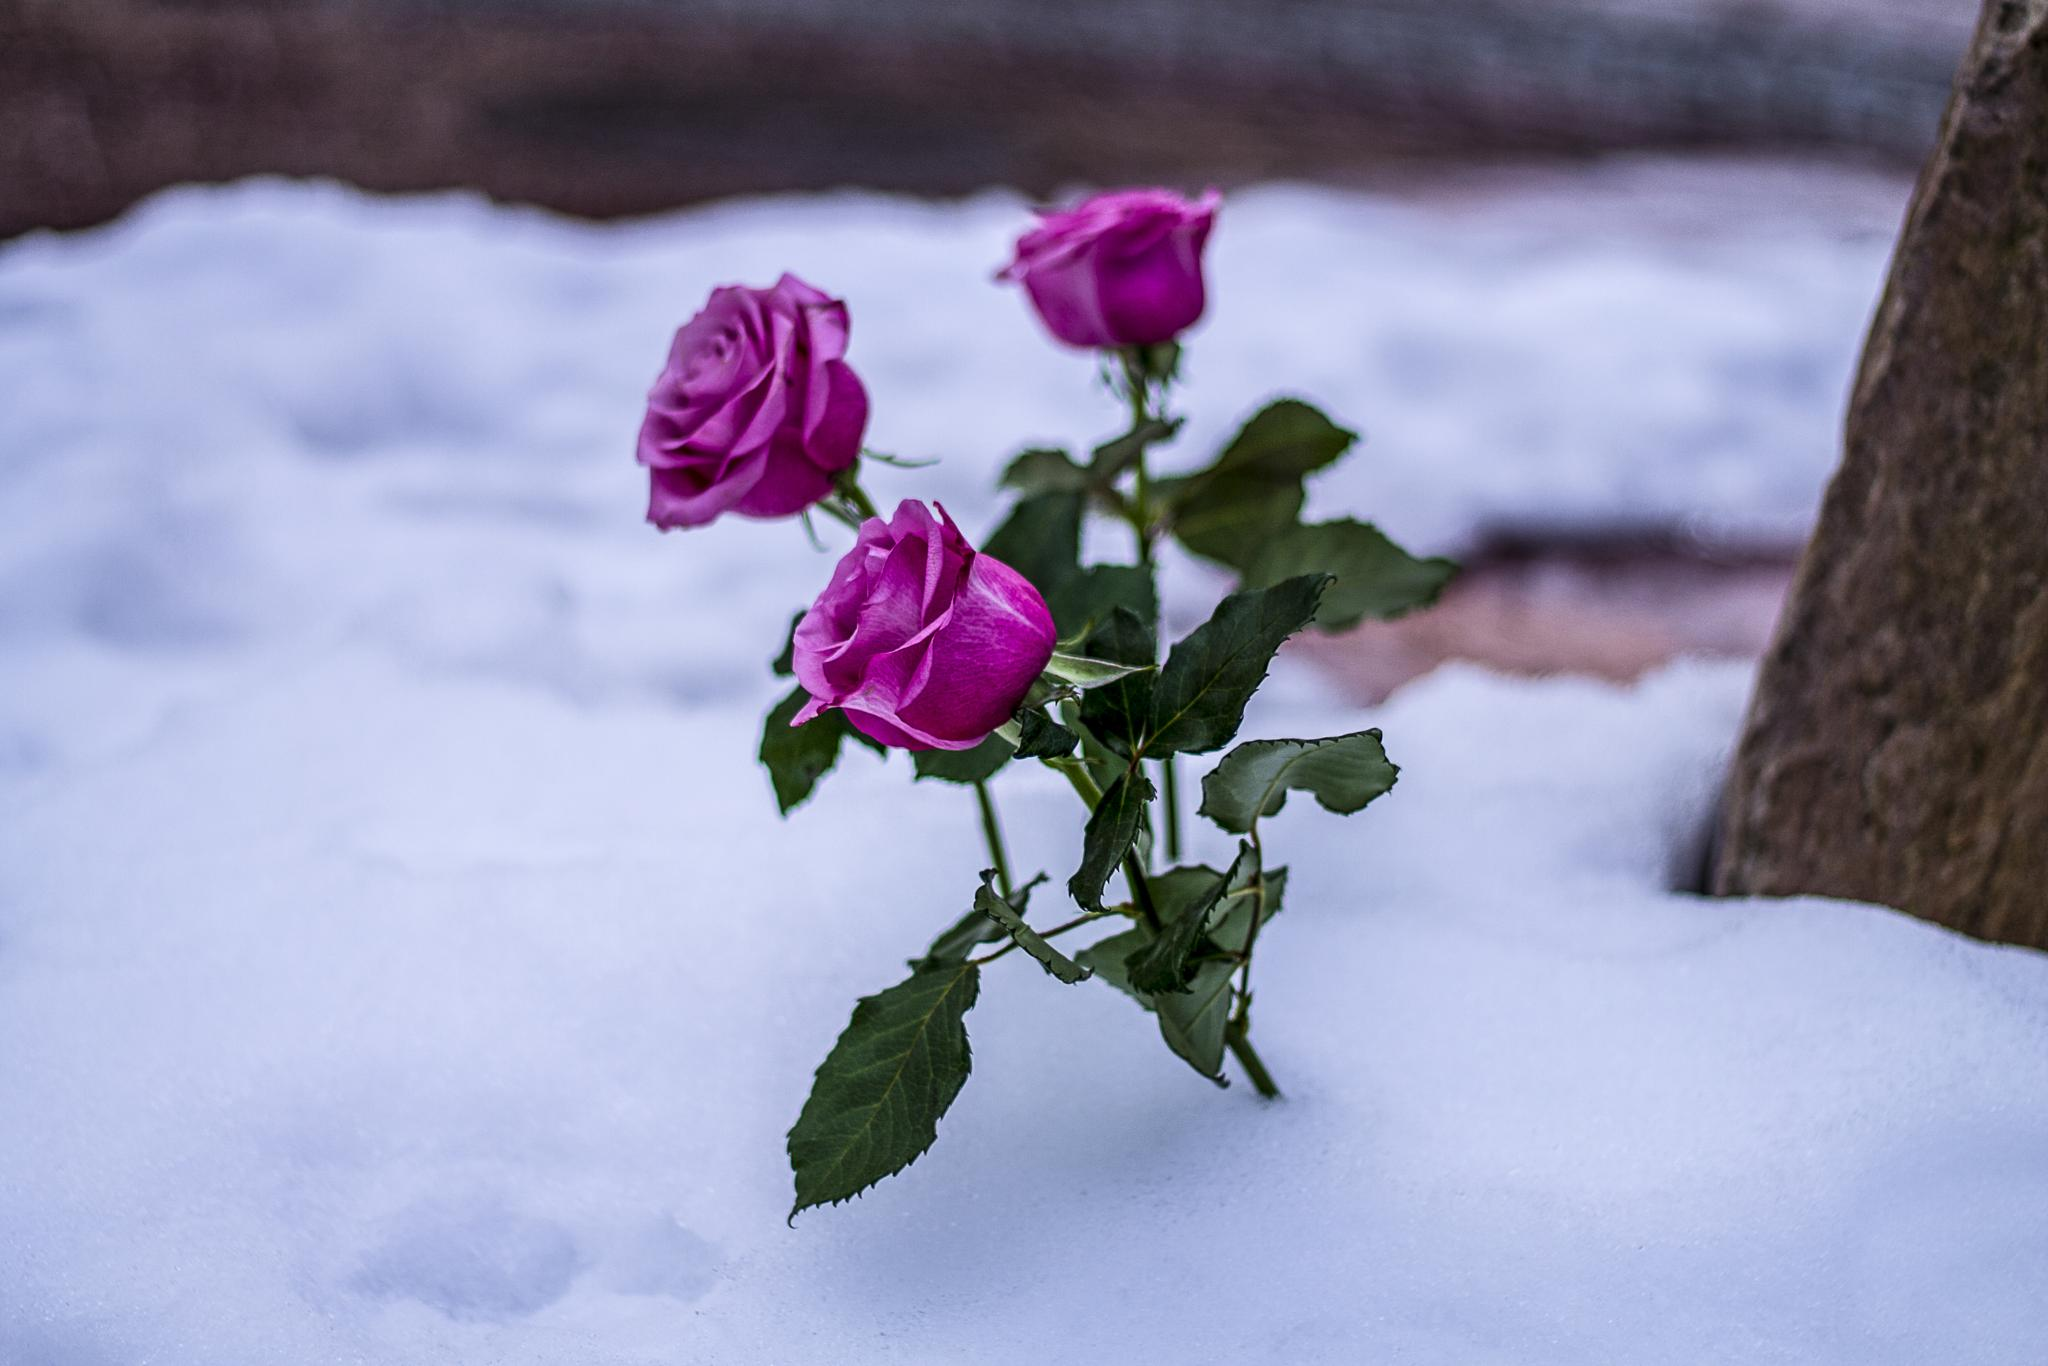 Roses in the snow by Carl Hult